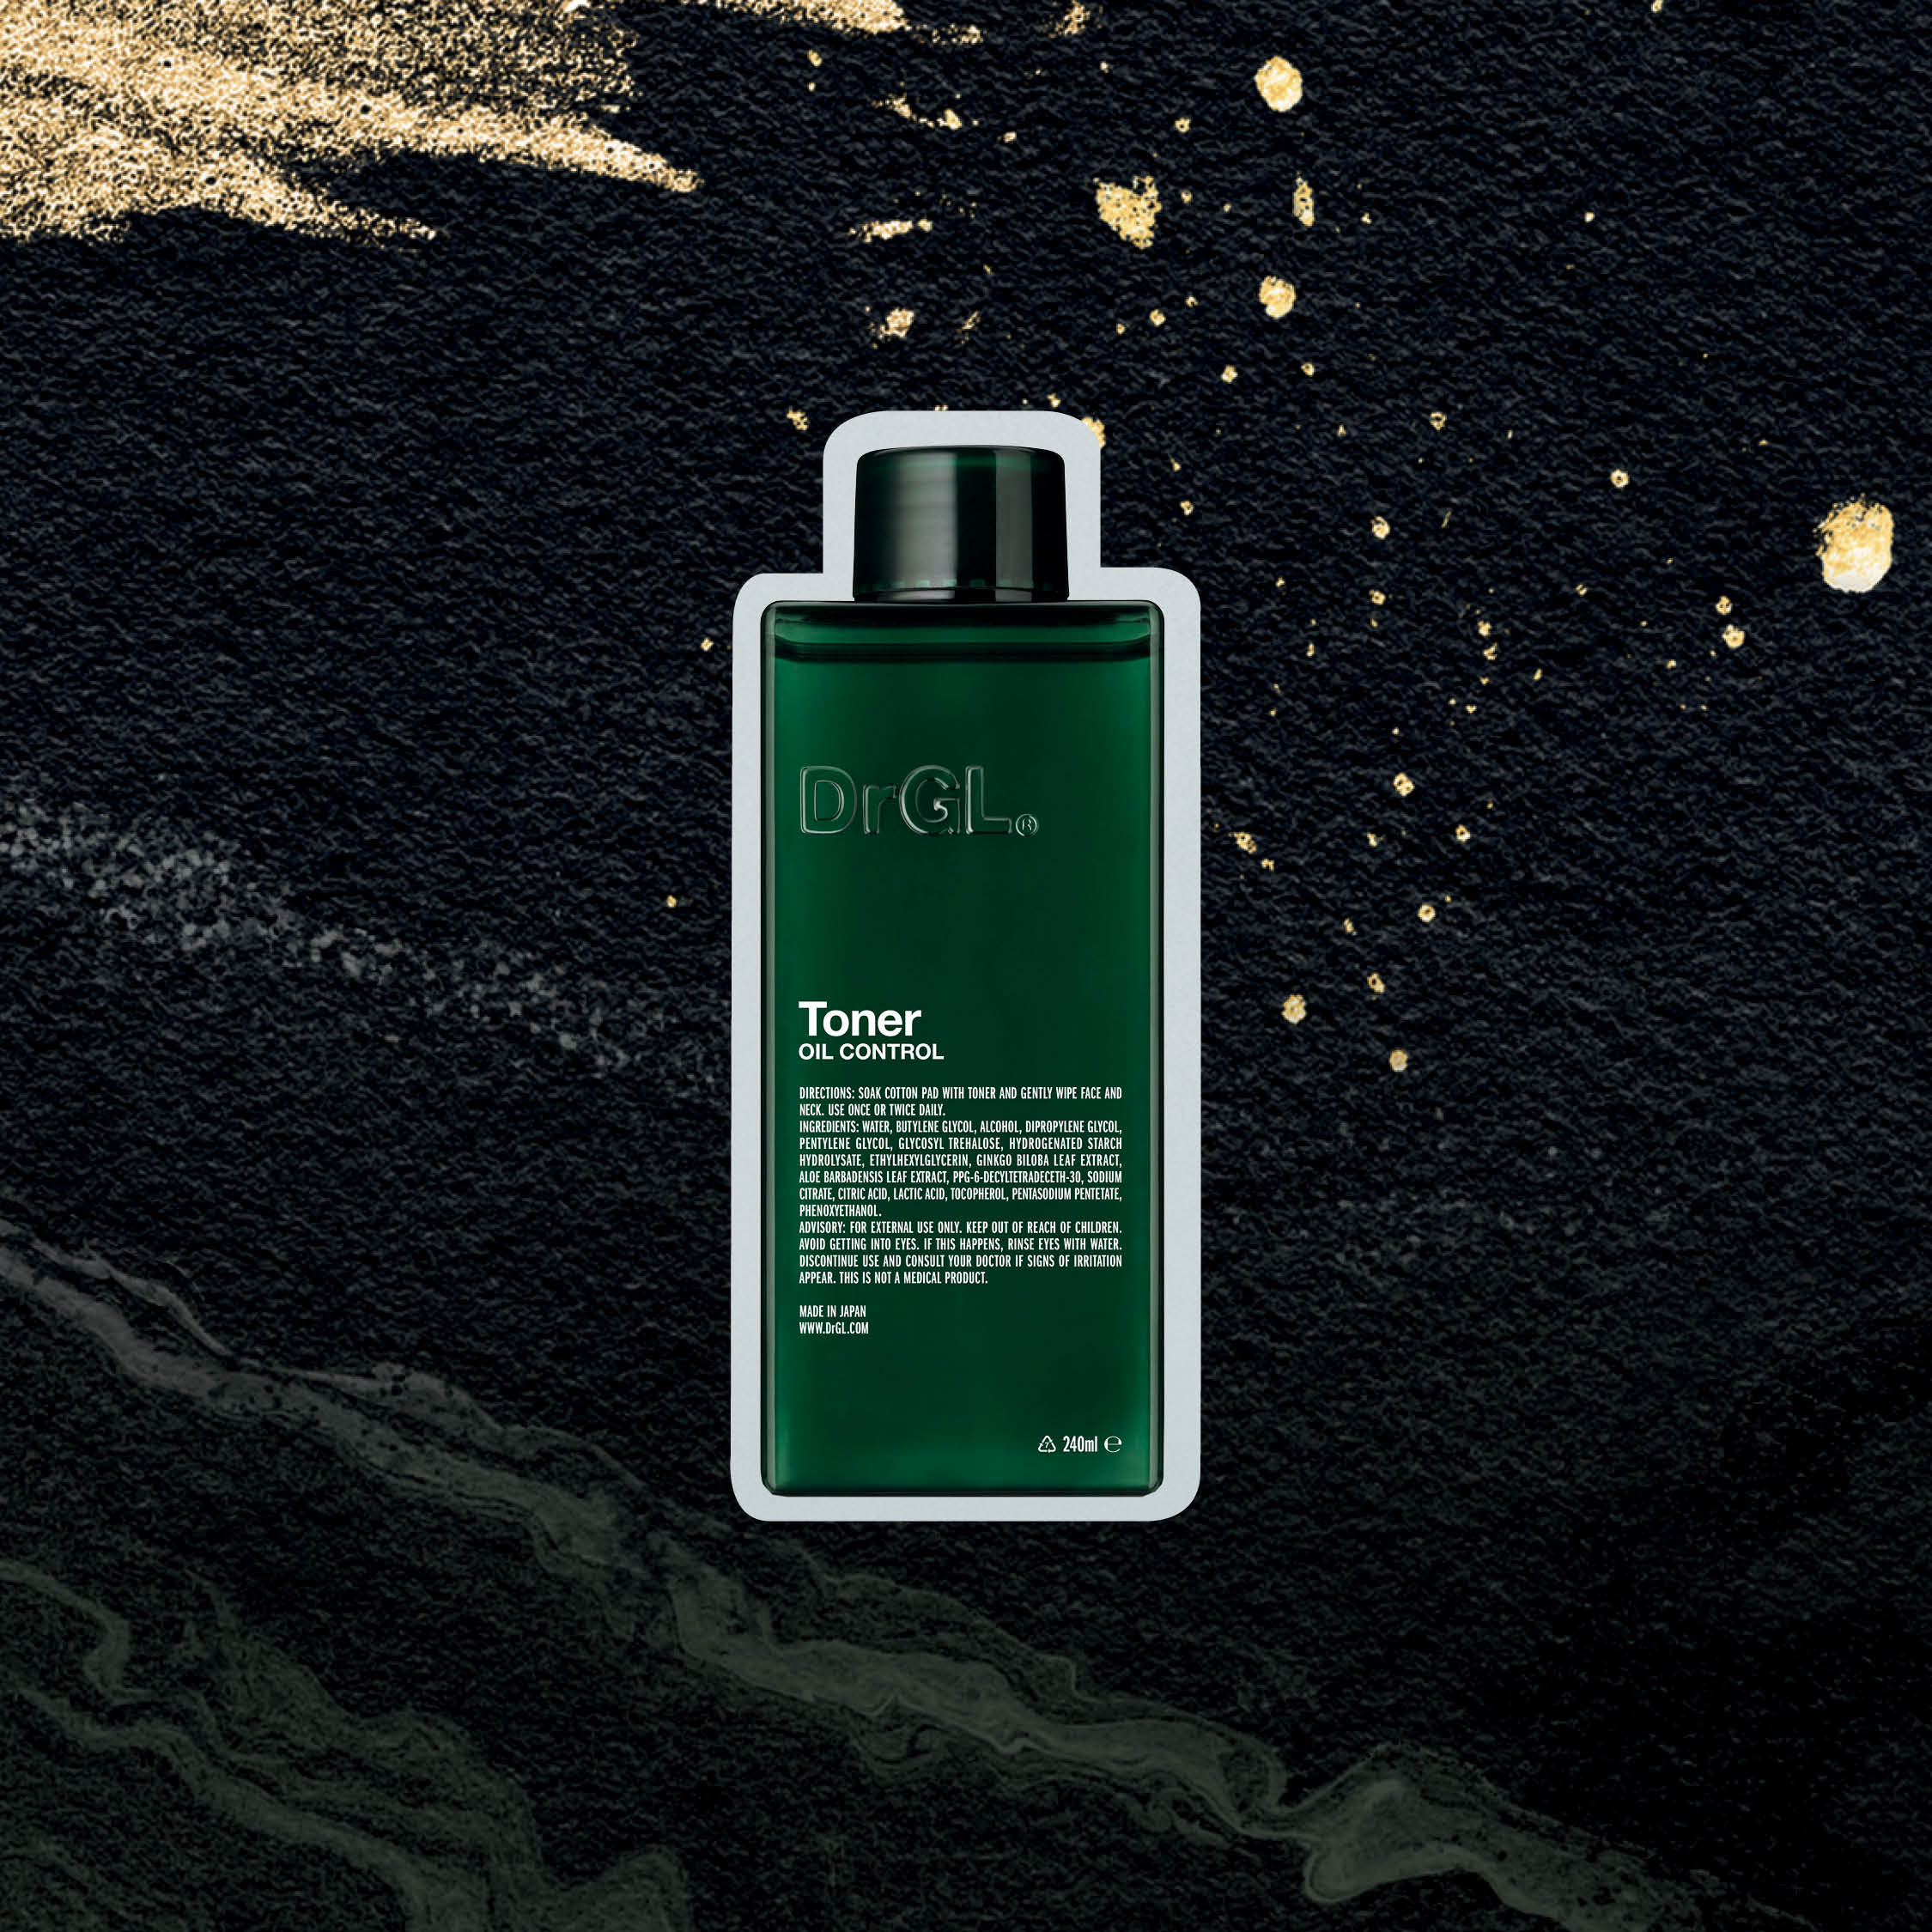 Grooming Awards 2020 - Best Toners/Mists for Oily Skin. Art Direction: Jonathan Tai